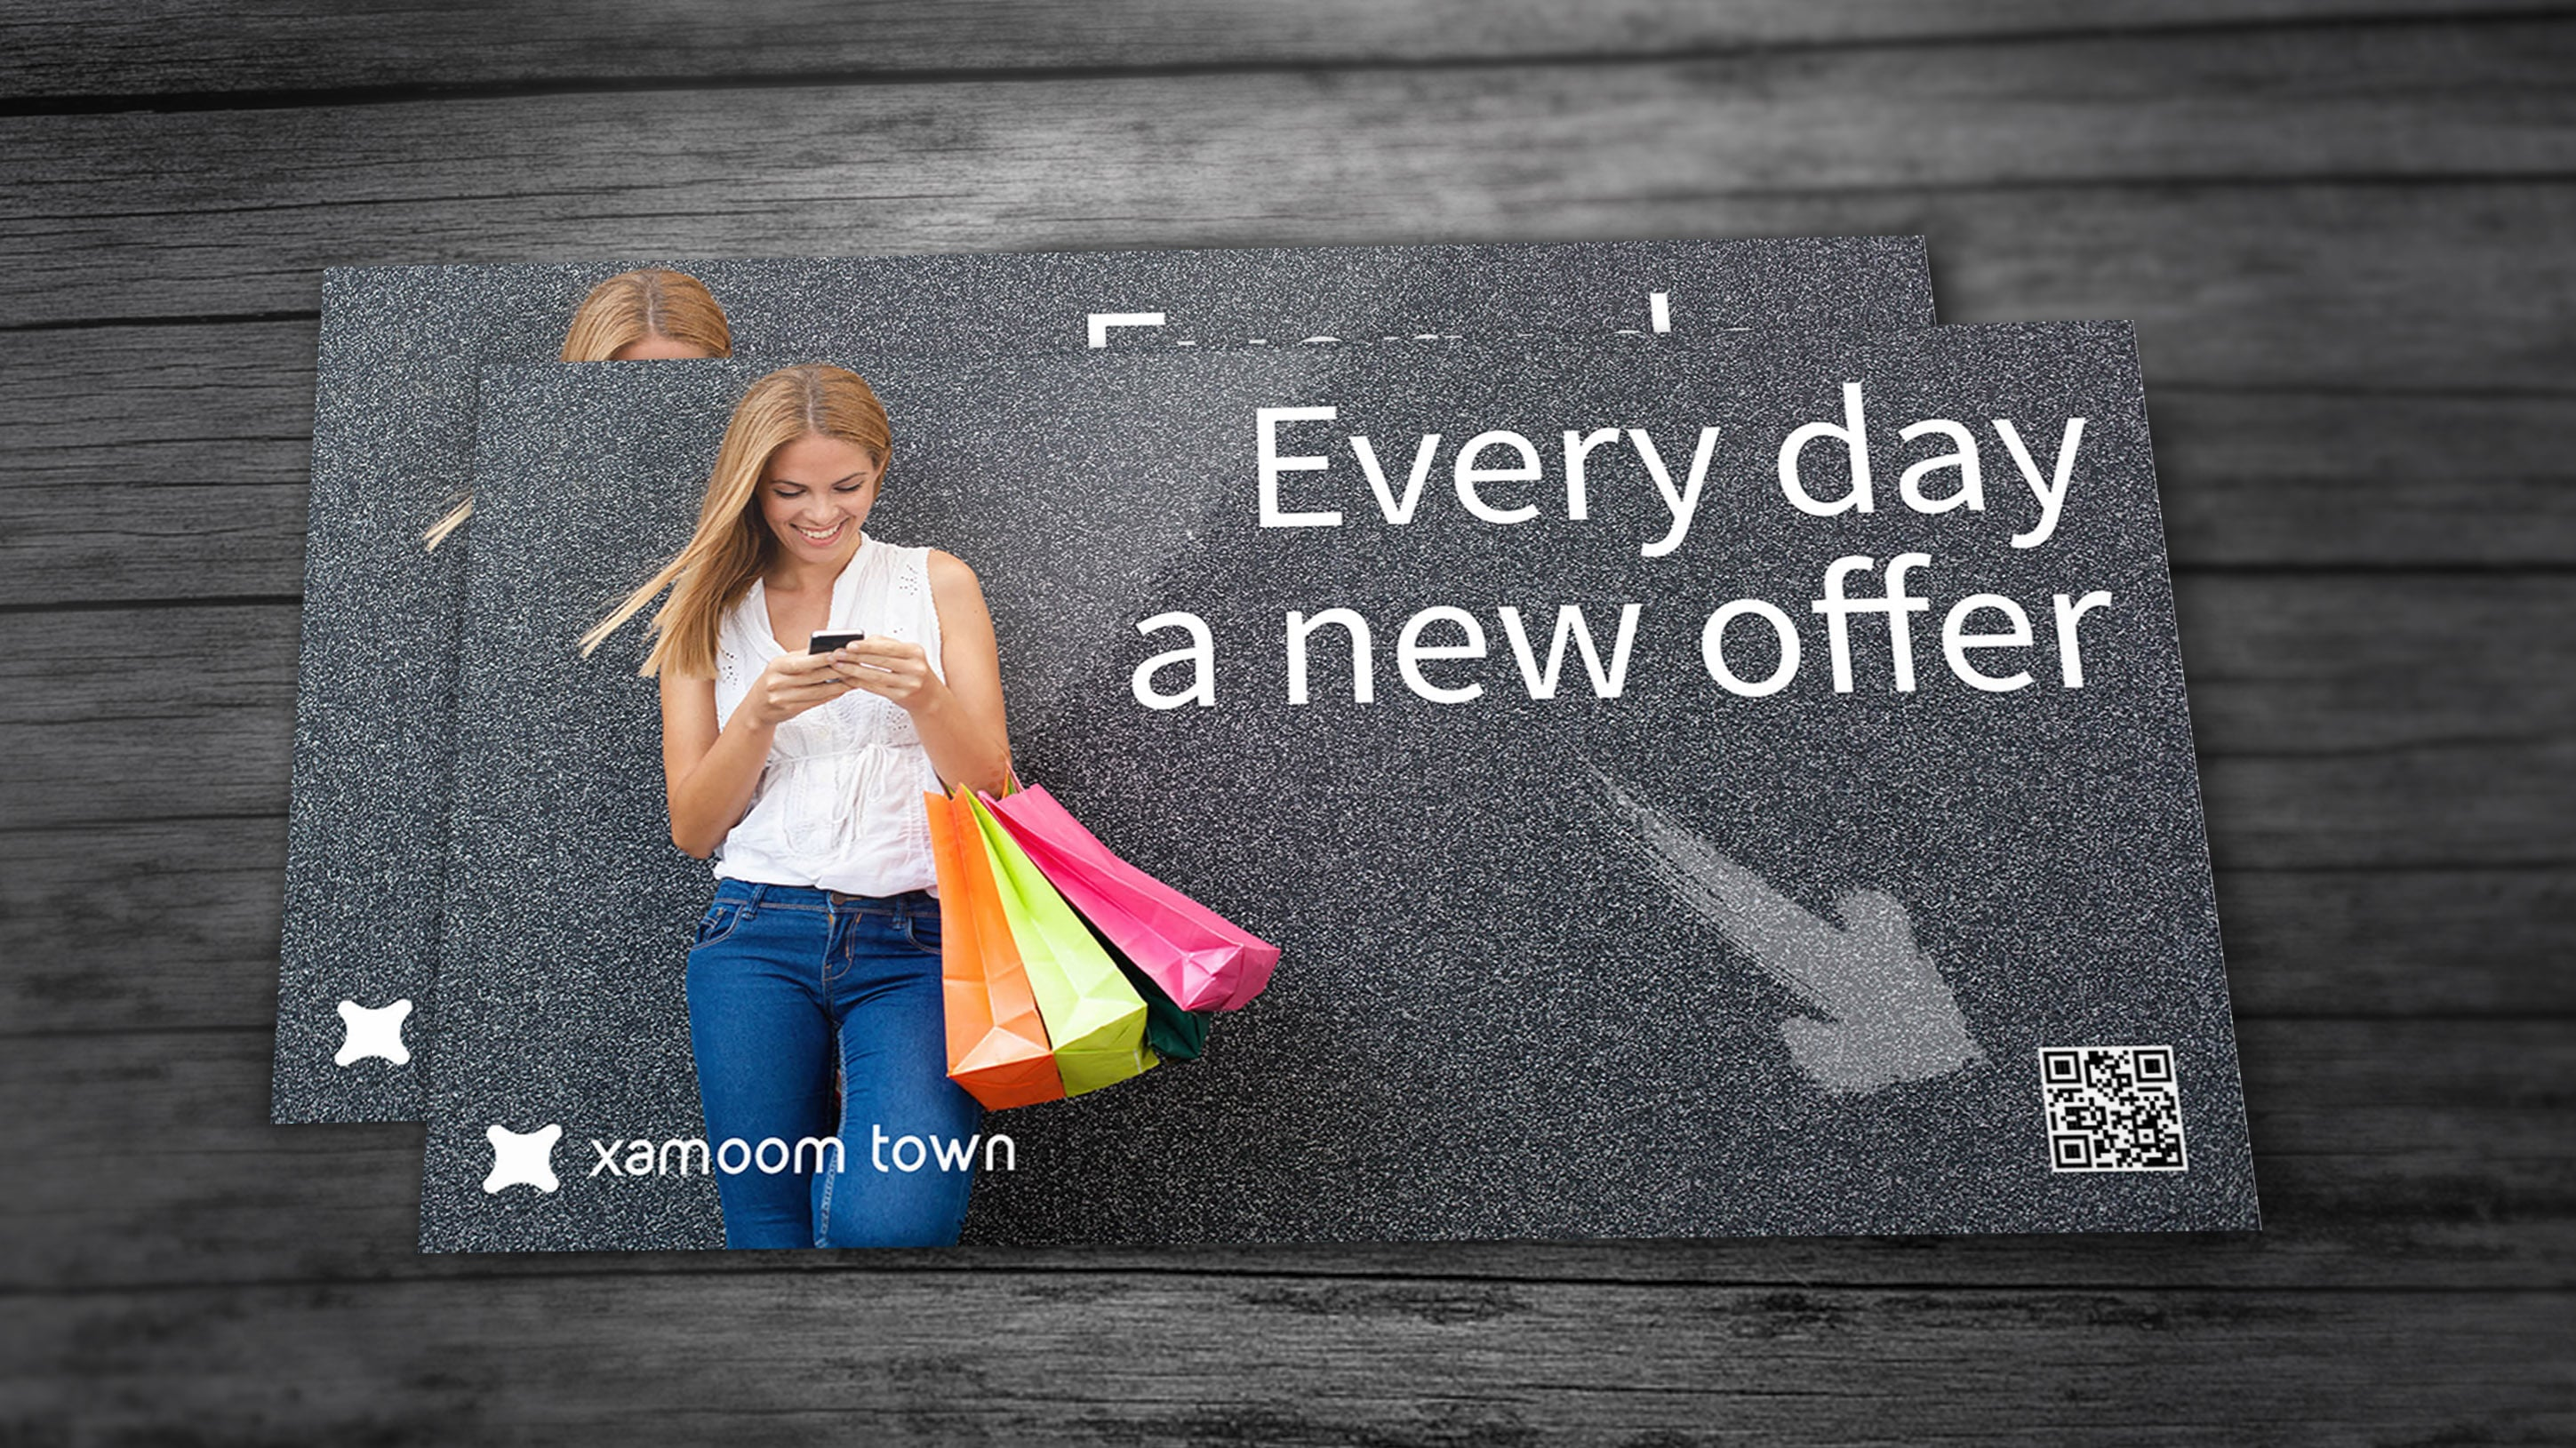 QR, NFC and iBeacons in city marketing